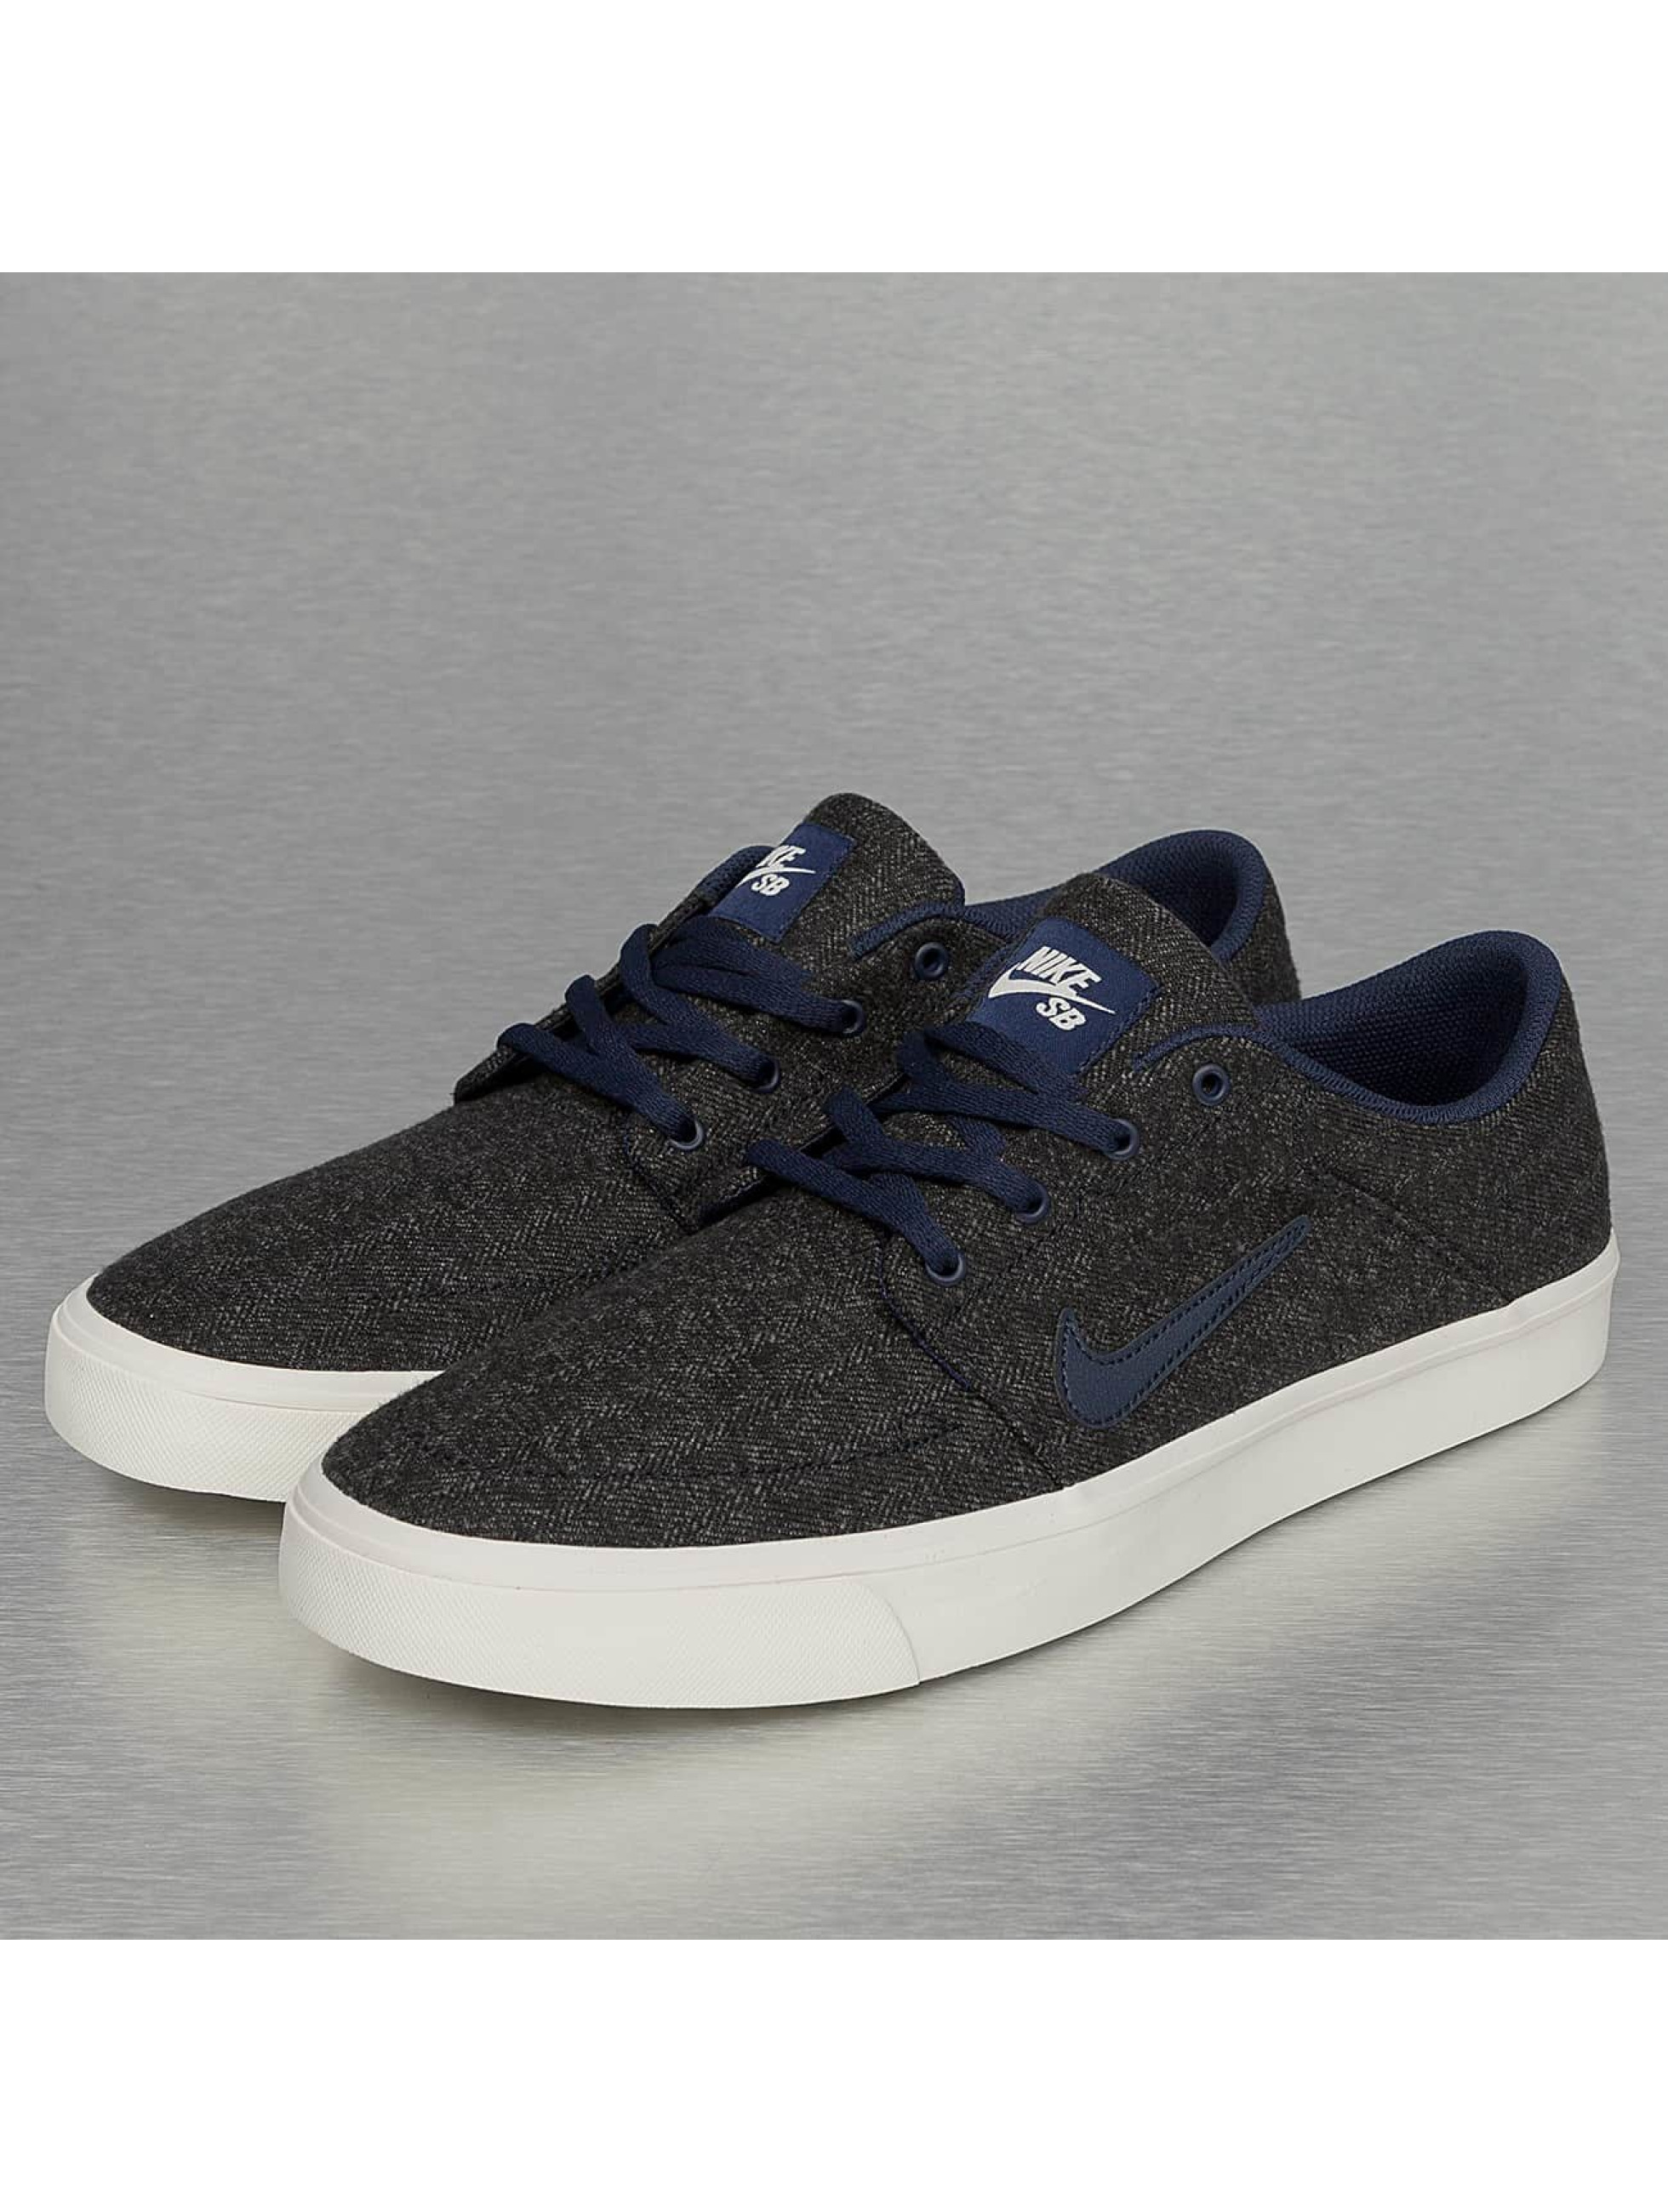 Nike SB Portmore Canvas Premium Sneakers Anthracite/Obsidian/Ivory